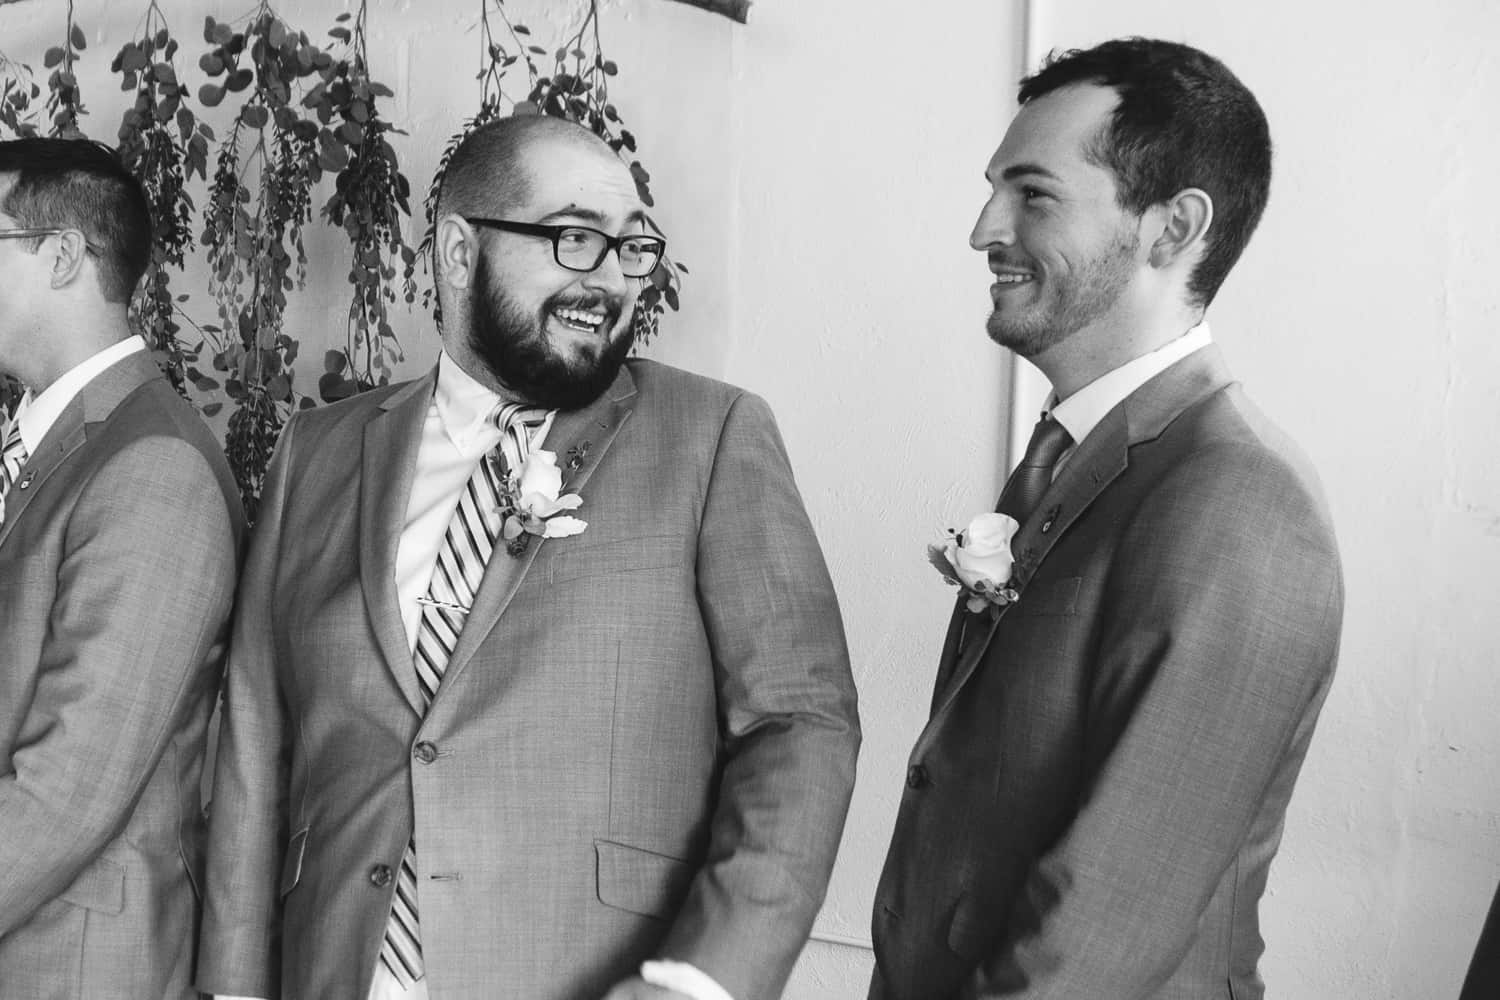 a groomsman turns to another while laughing.